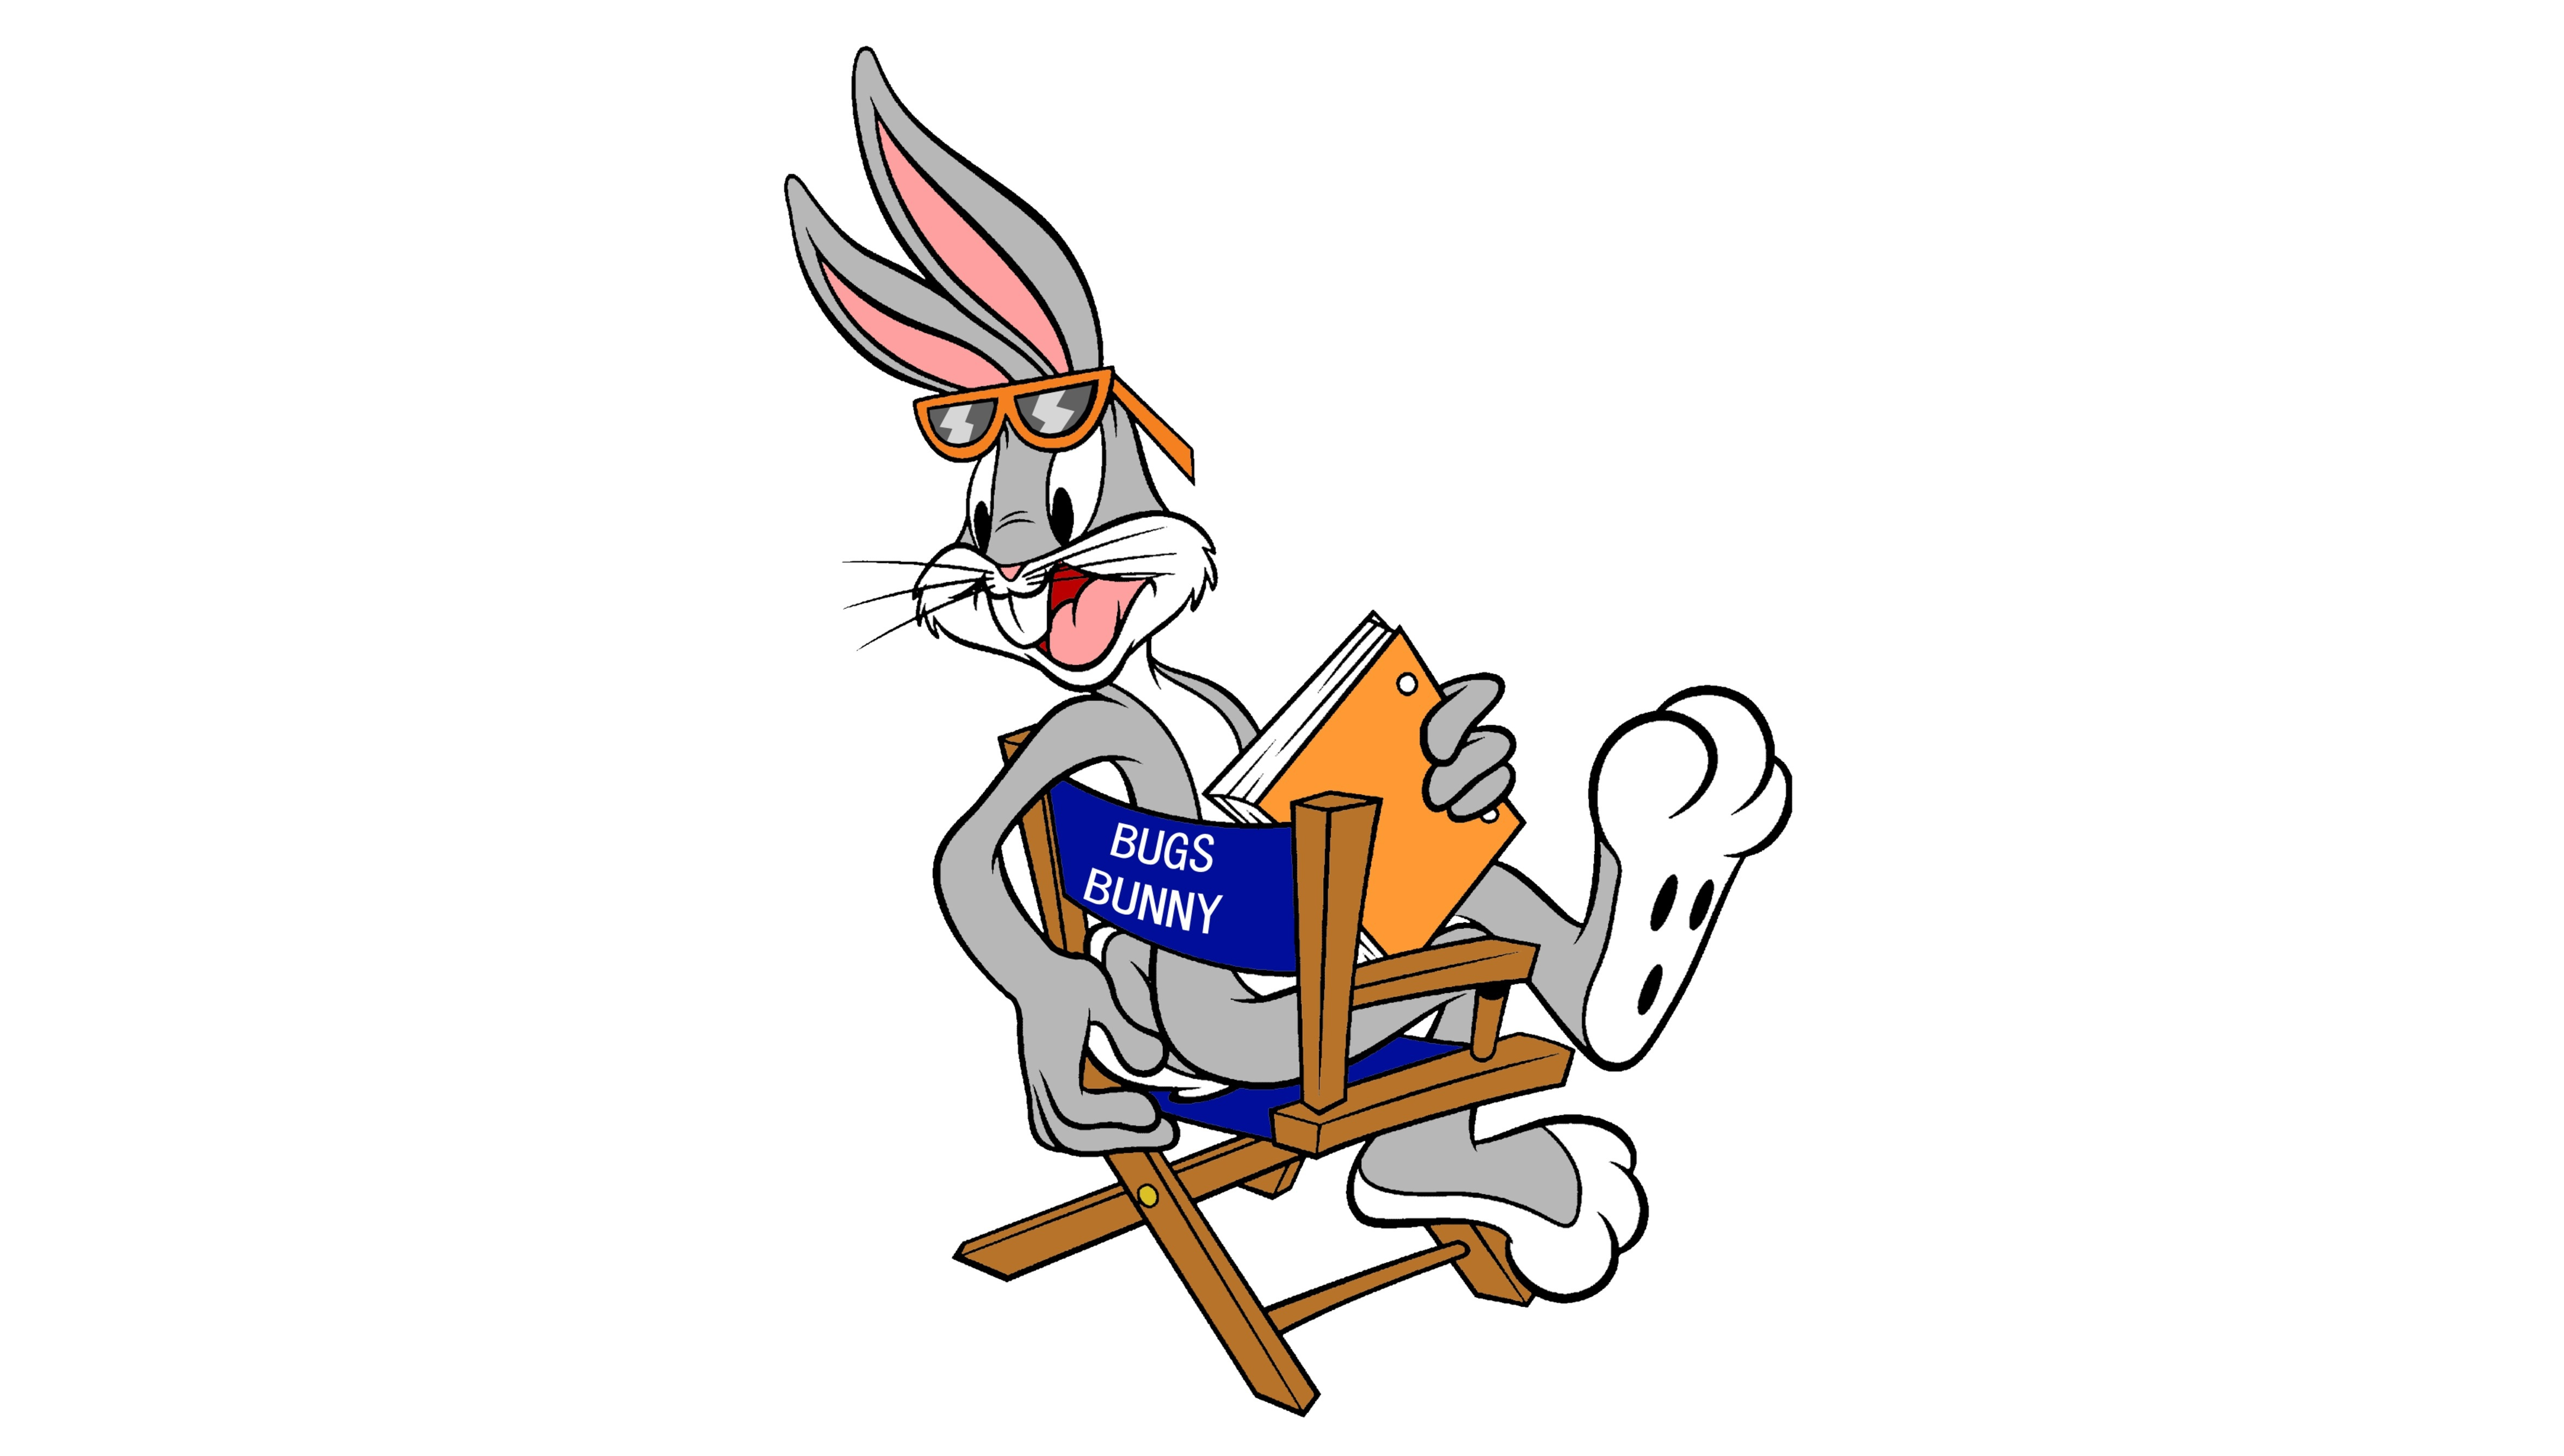 Bugs Bunny High Quality Wallpapers